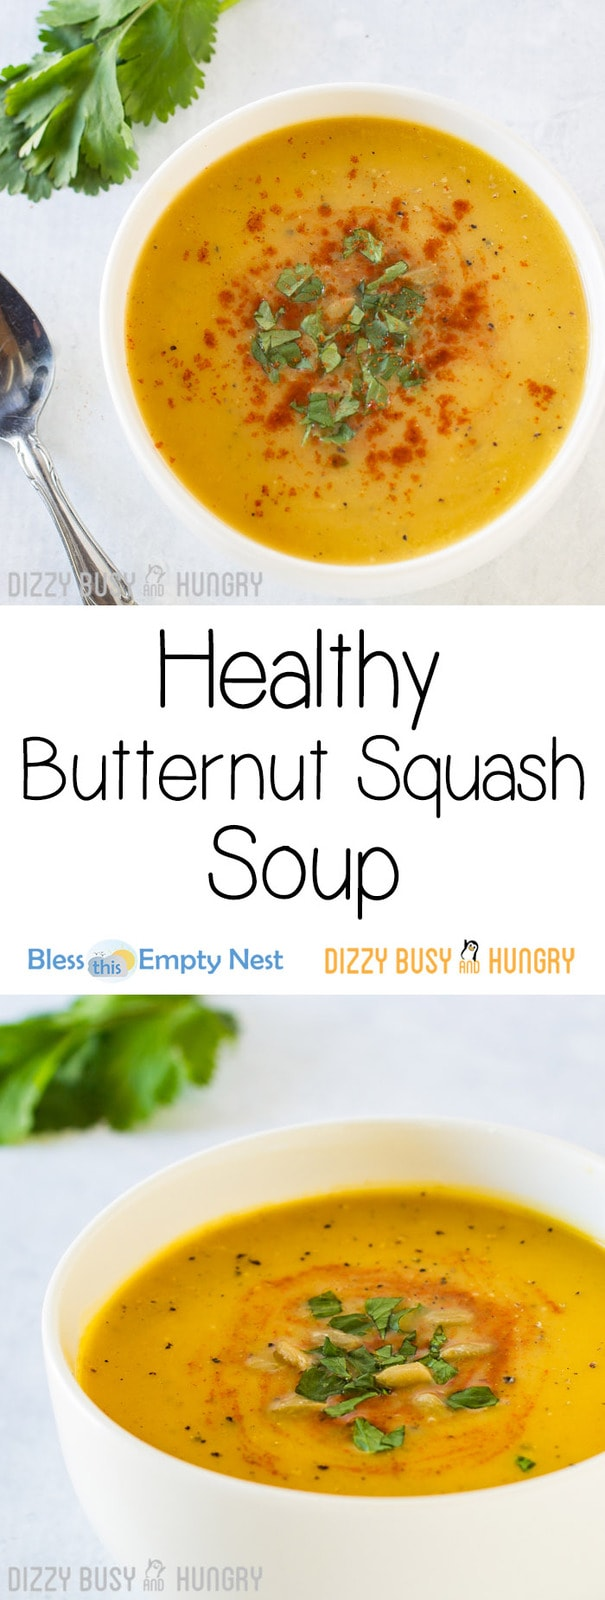 Healthy Butternut Squash Soup | DizzyBusyandHungry.com - Silky, fragrant, and flavorful, this comforting soup is a hit with adults and kids alike!